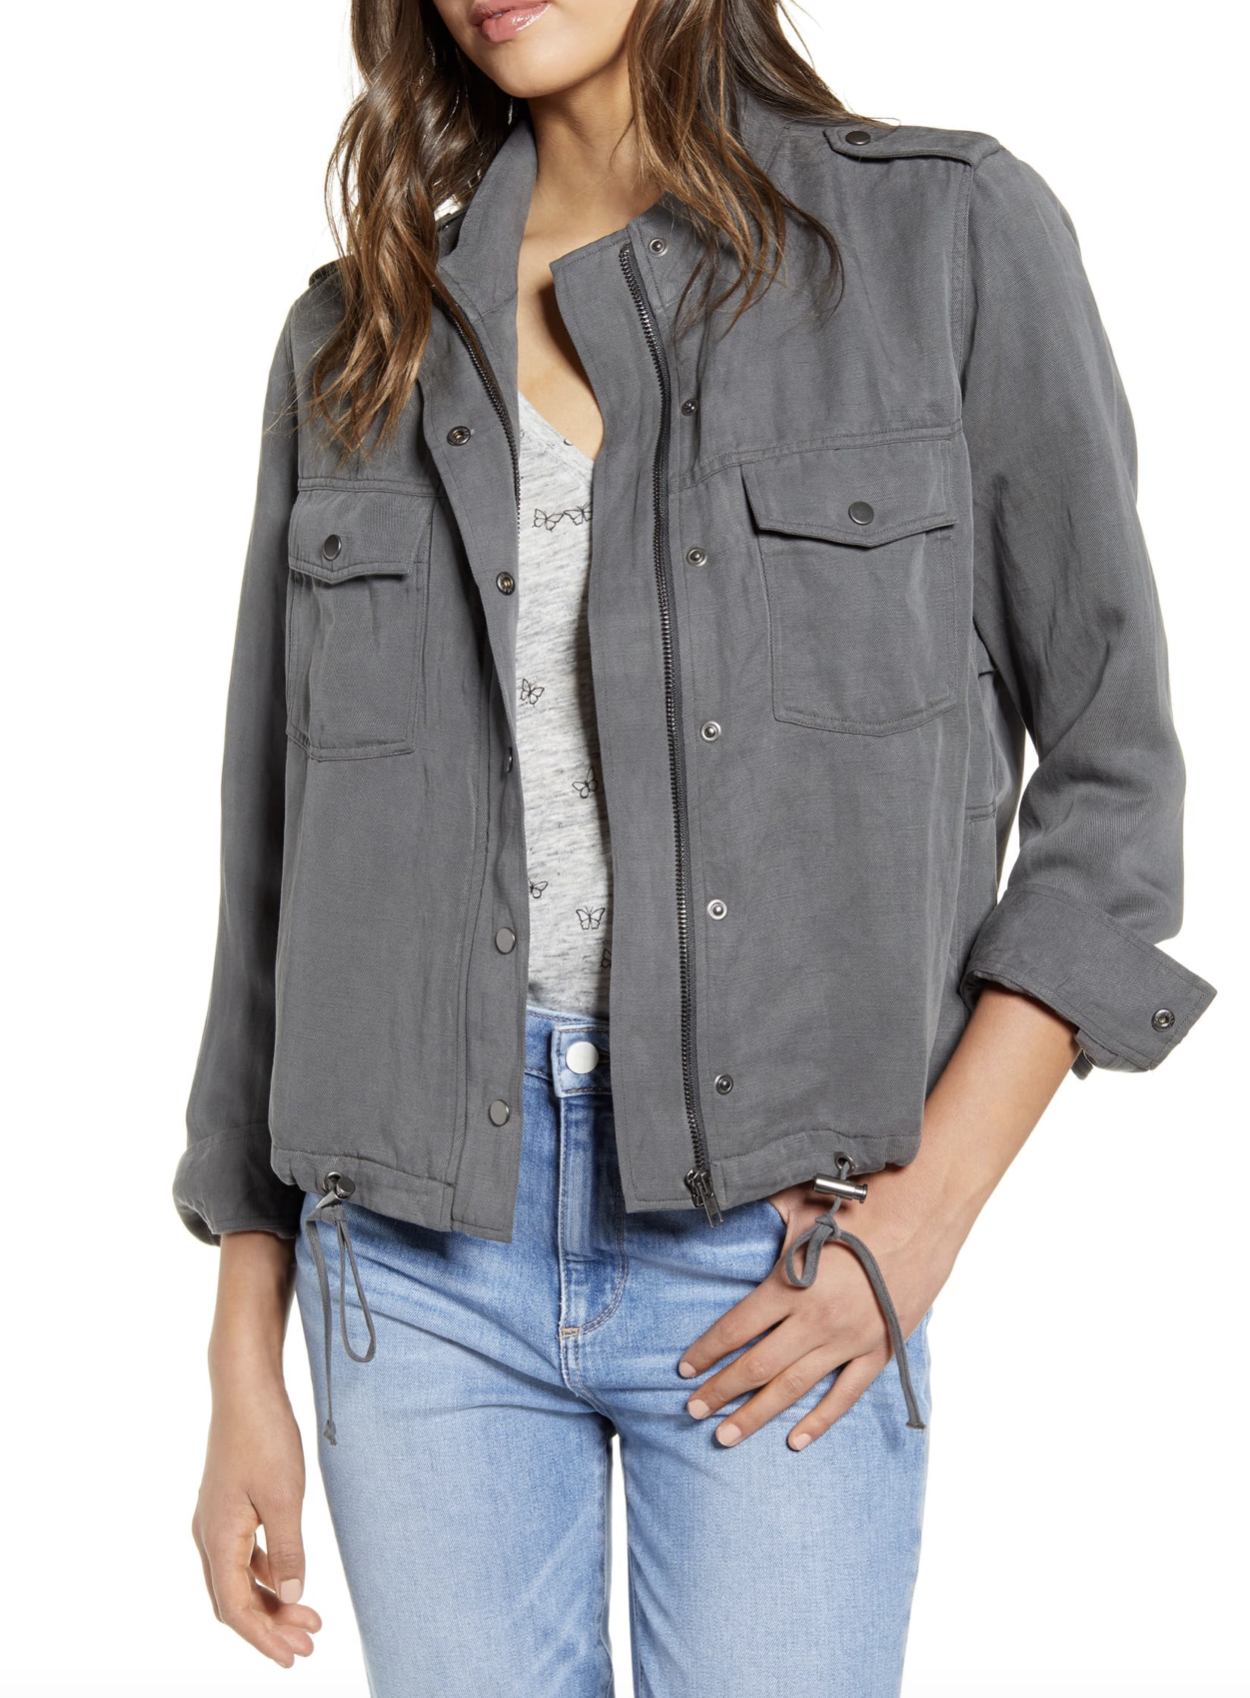 Rails Collins Military Jacket - $125.90